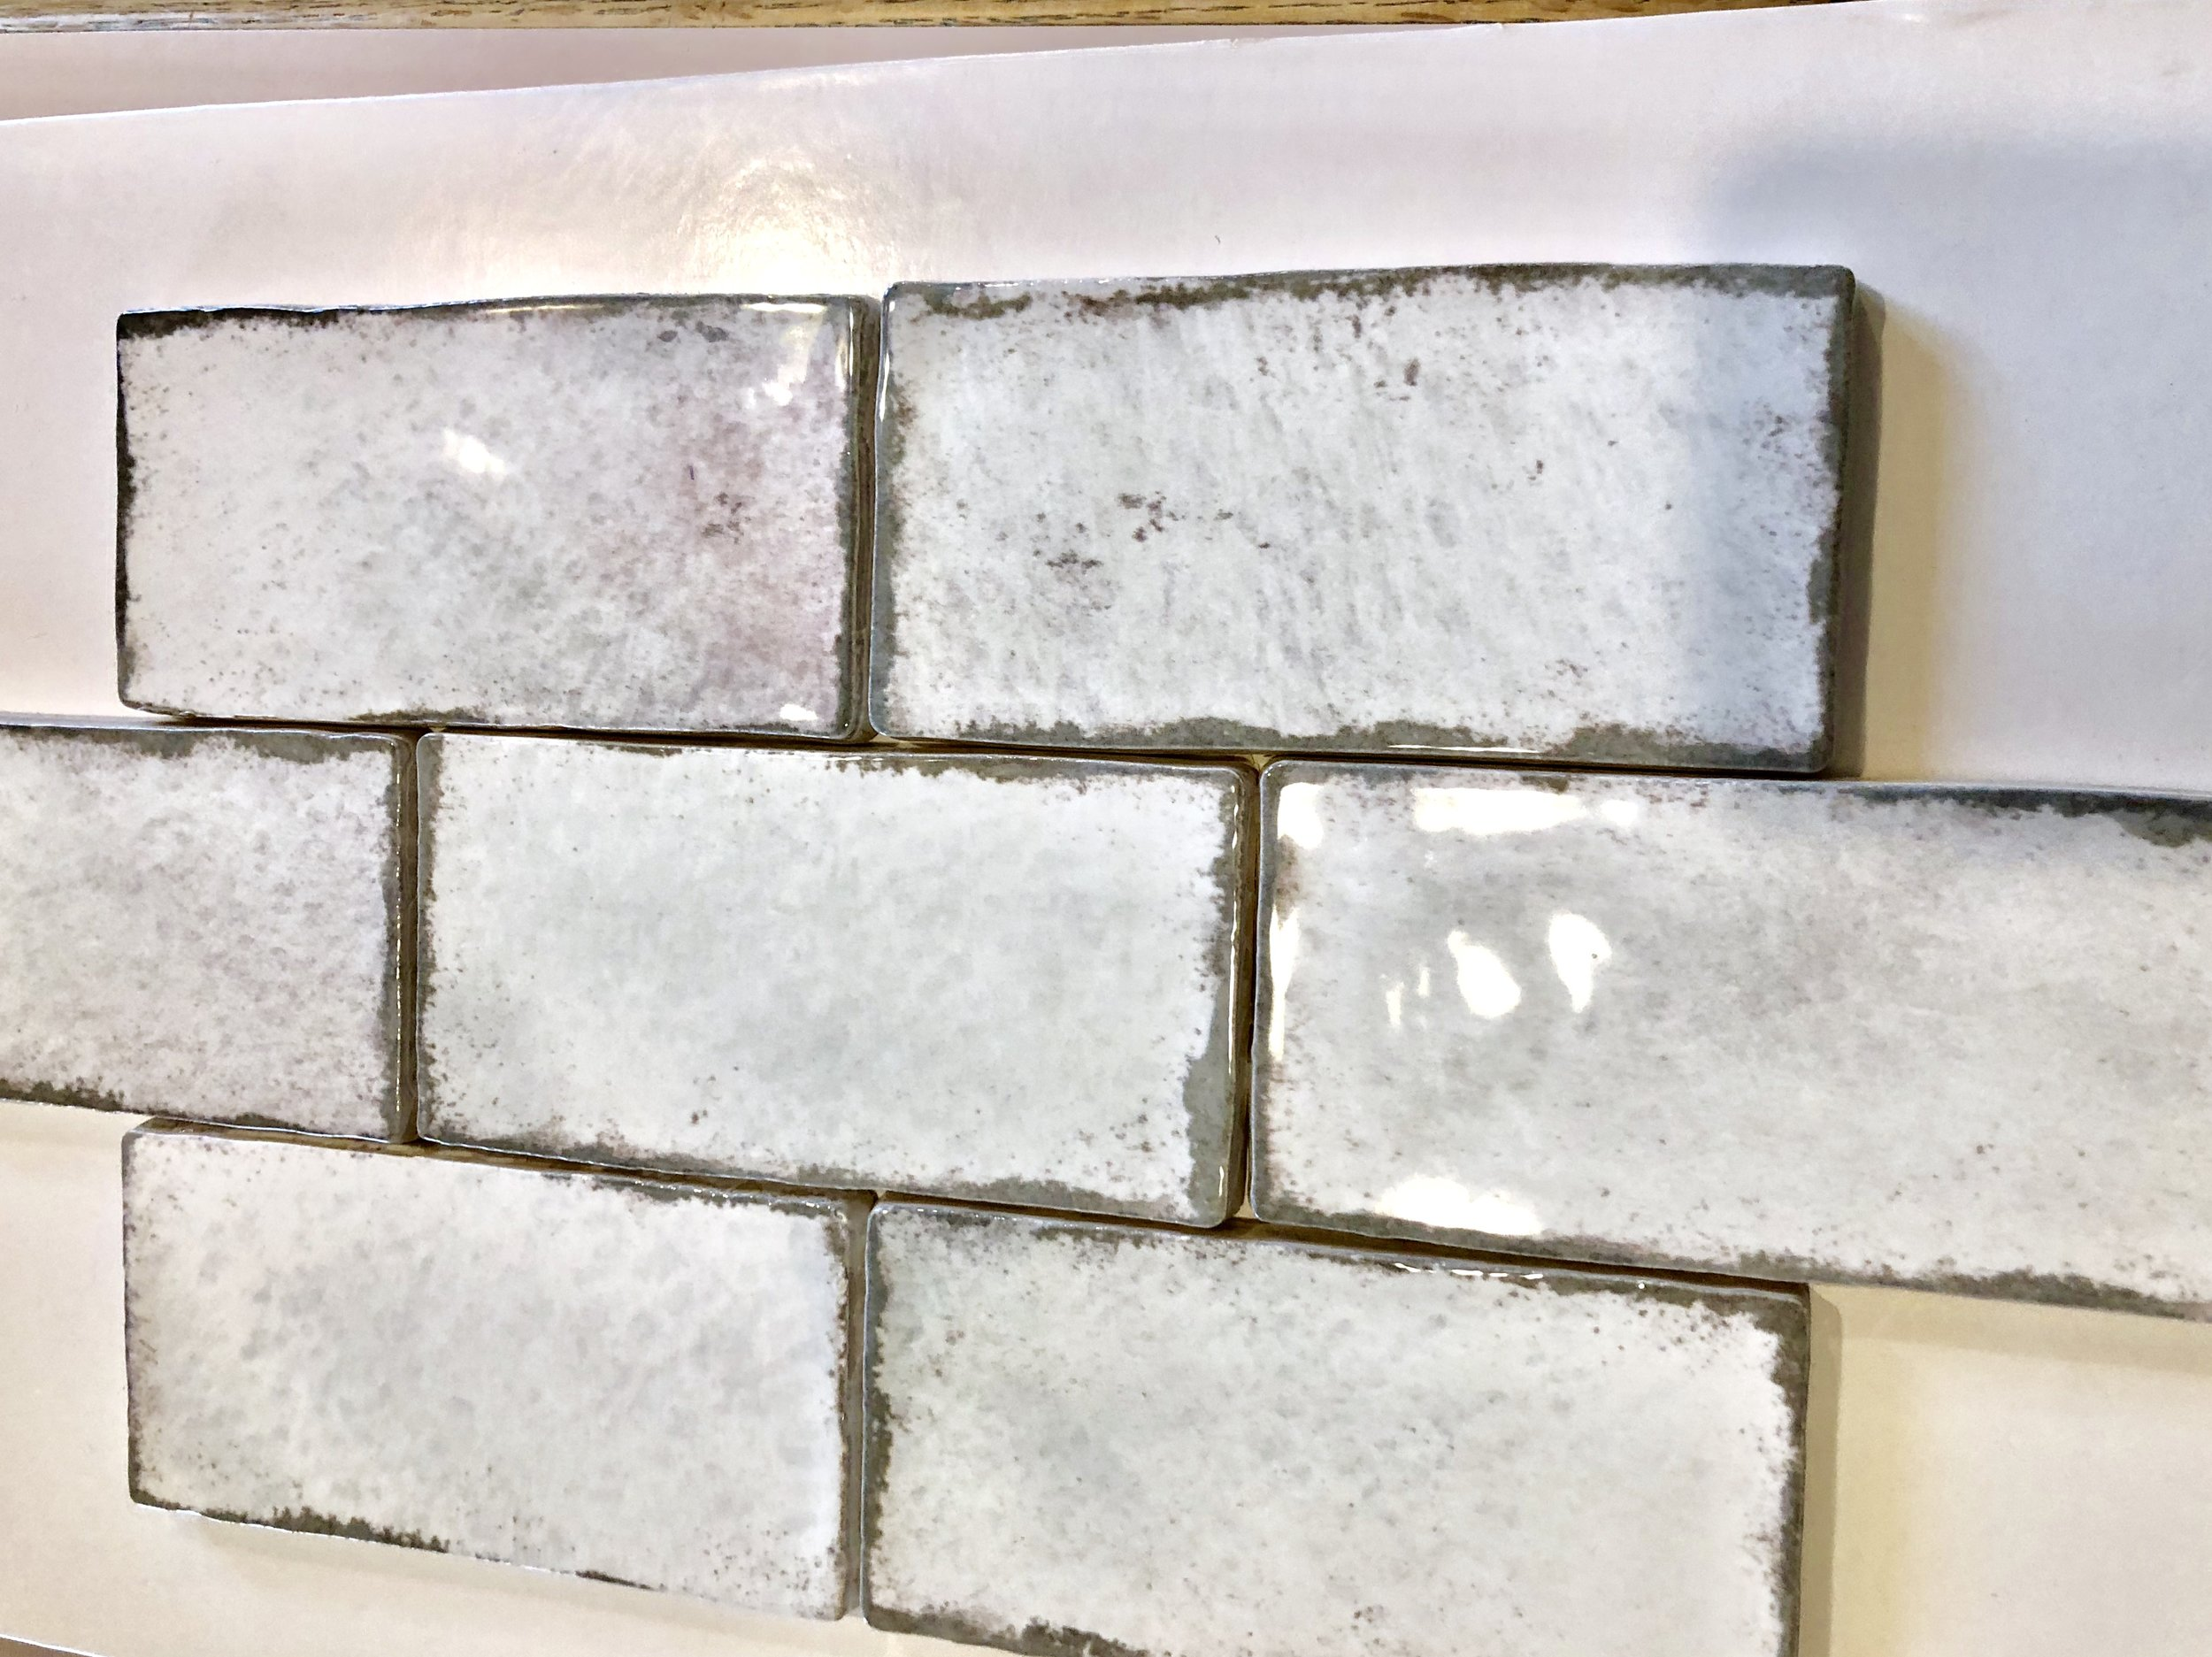 Handmade ceramic backsplash tile